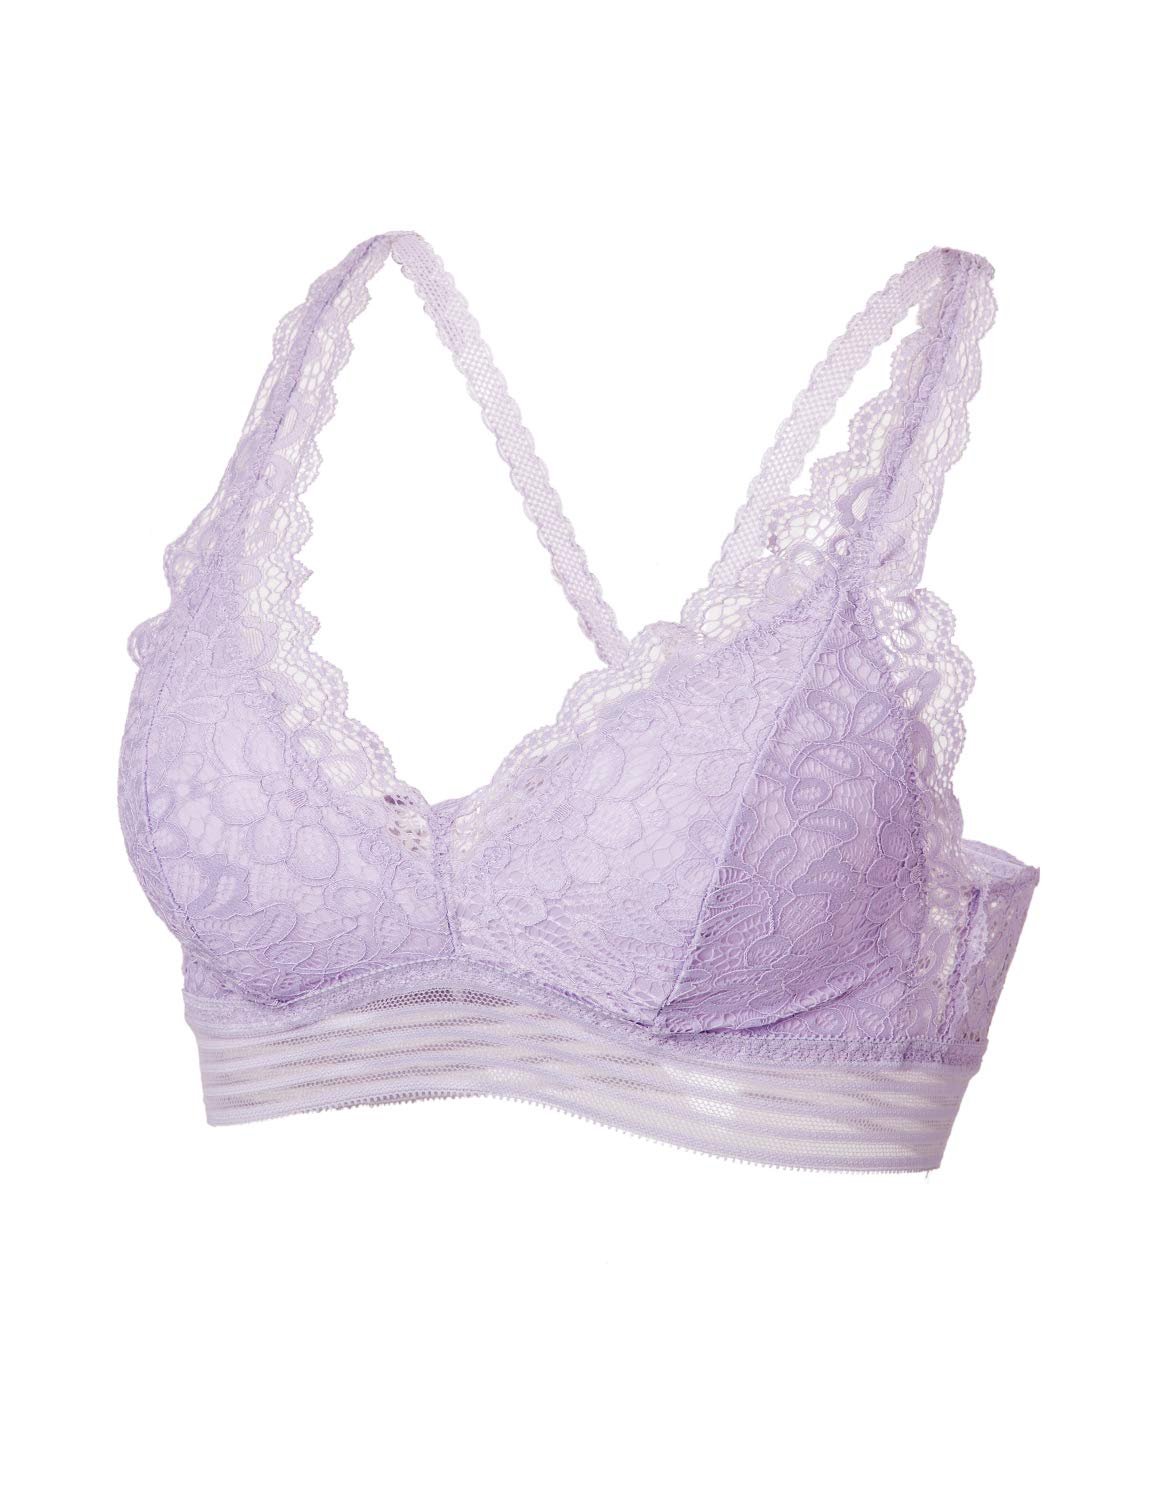 83f0e7aaa9334 DOBREVA Women s Removable Pads Wirefree Longline Deep V Floral Lace  Bralette Lilac S (32C 32D 34A 34B)